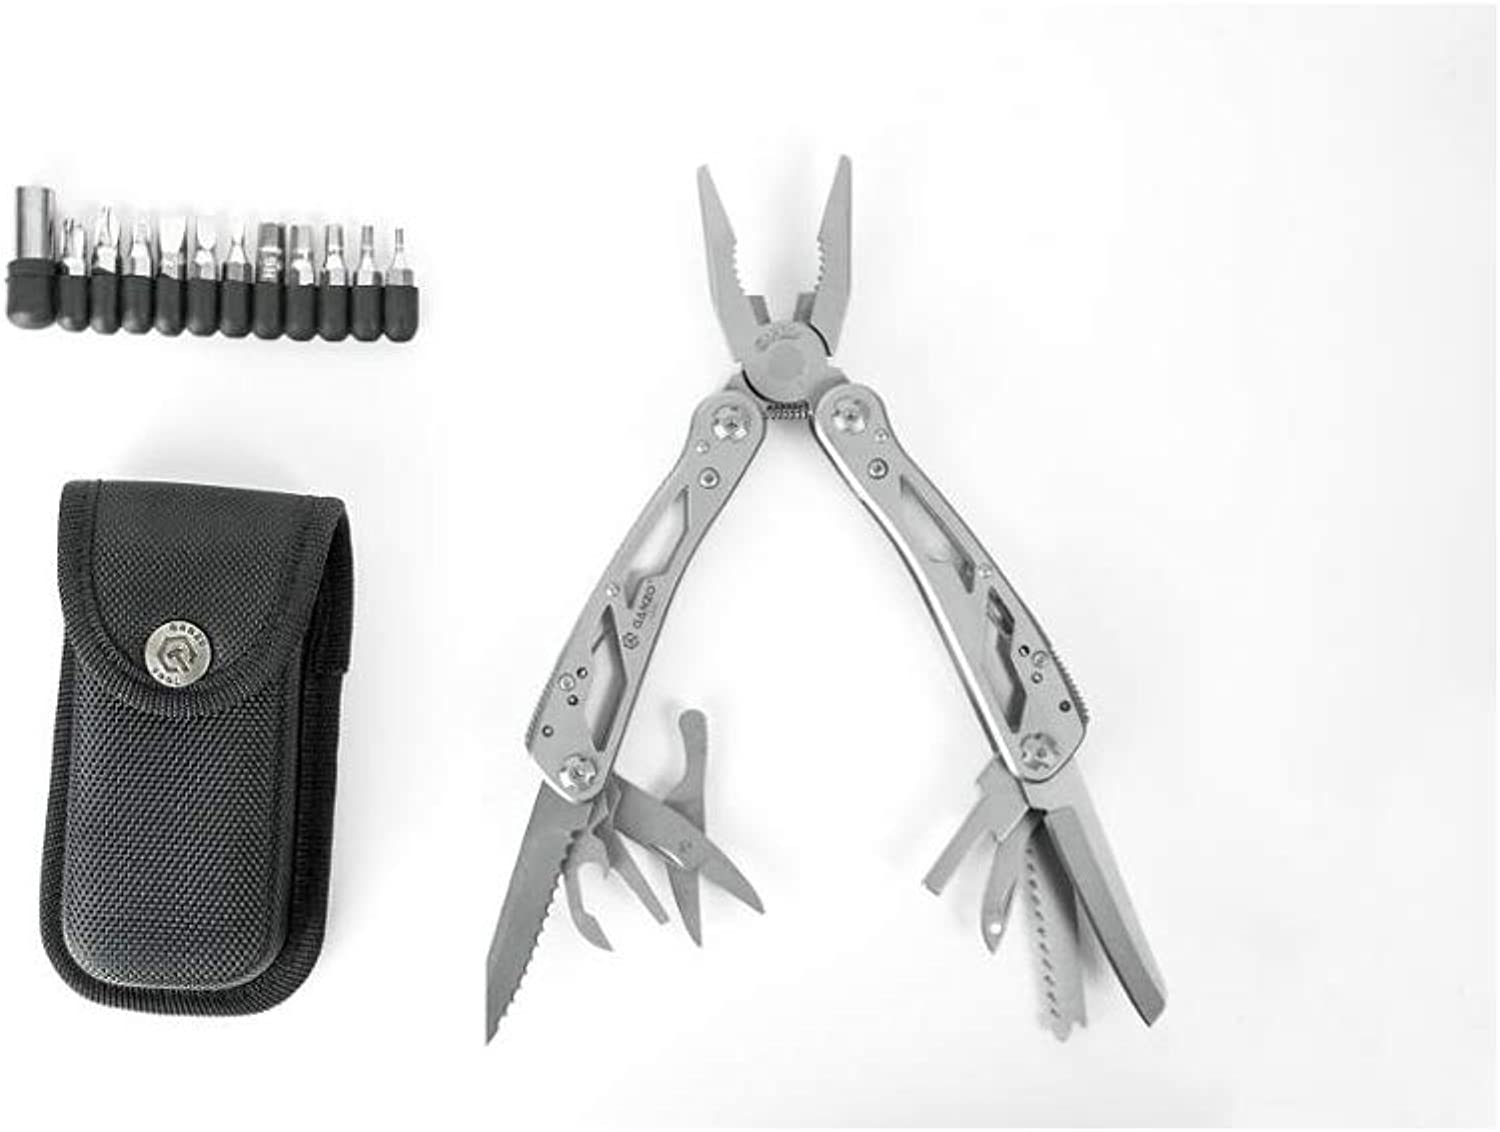 IACCSS Firebird G202 24 in 1 Hand Tool Kit Portable Plier,Stainless Multi Tools Pocket Folding Knife Pliers Clamp Multi Plier G202 Without Box